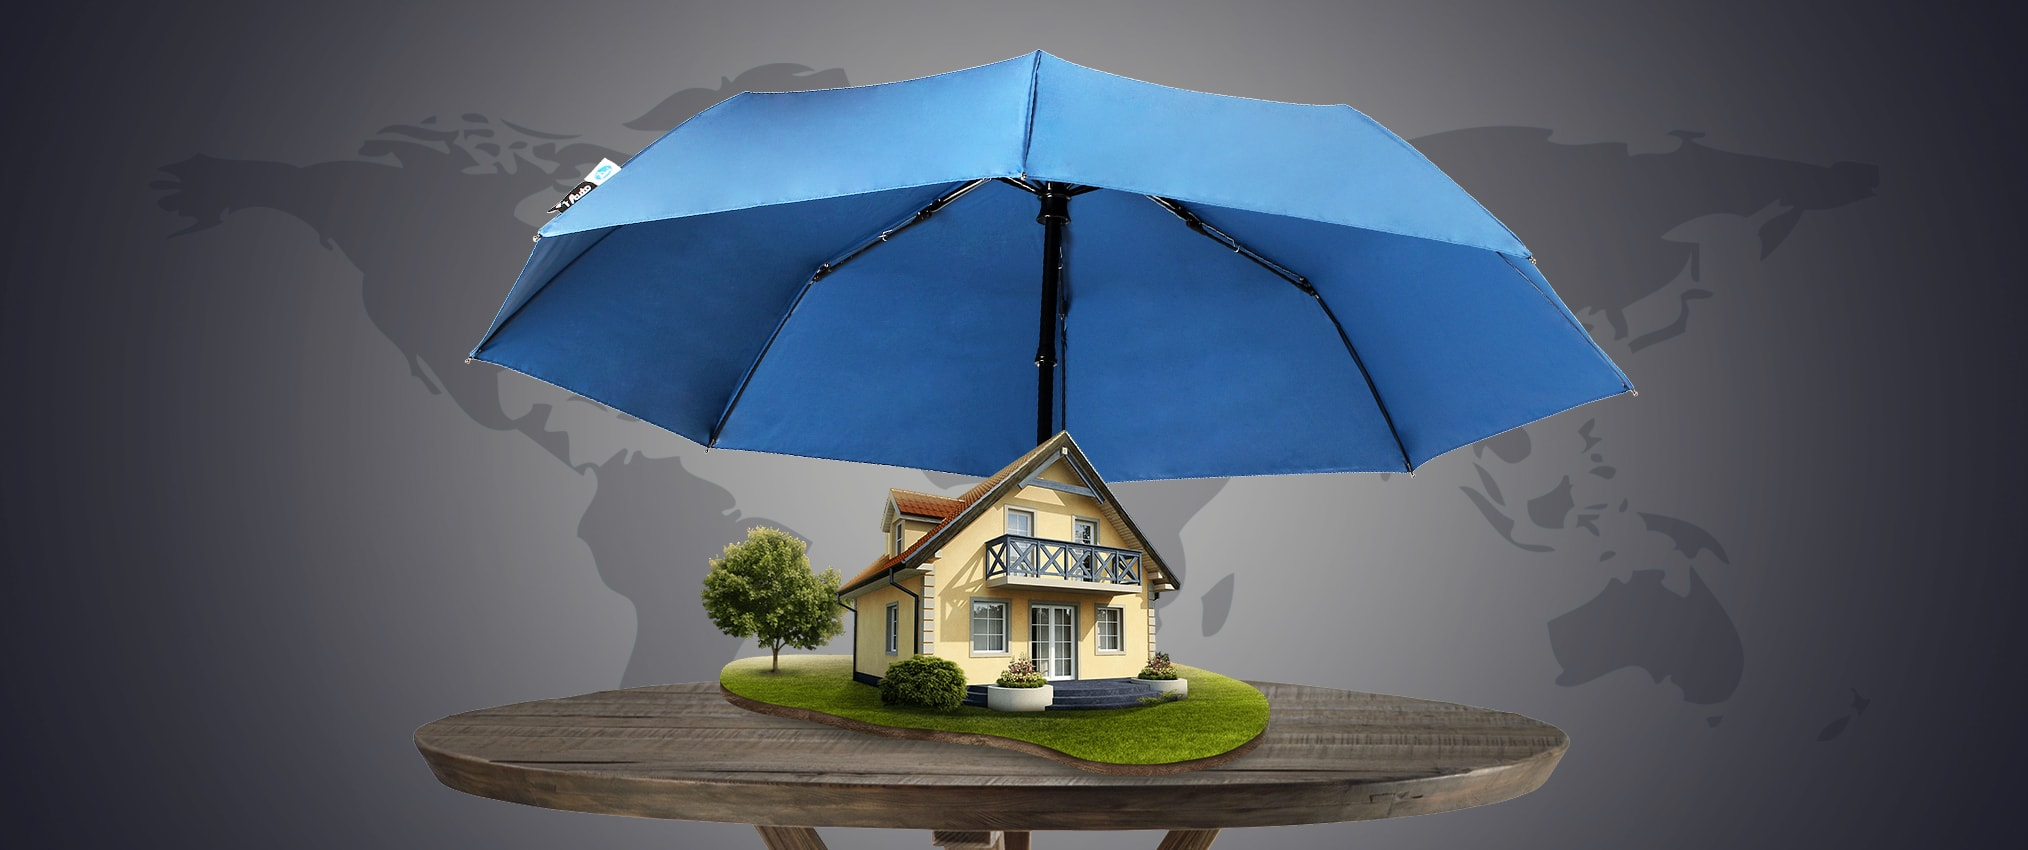 all-you-need-to-know-about-Mortgage-Protection-Insurance